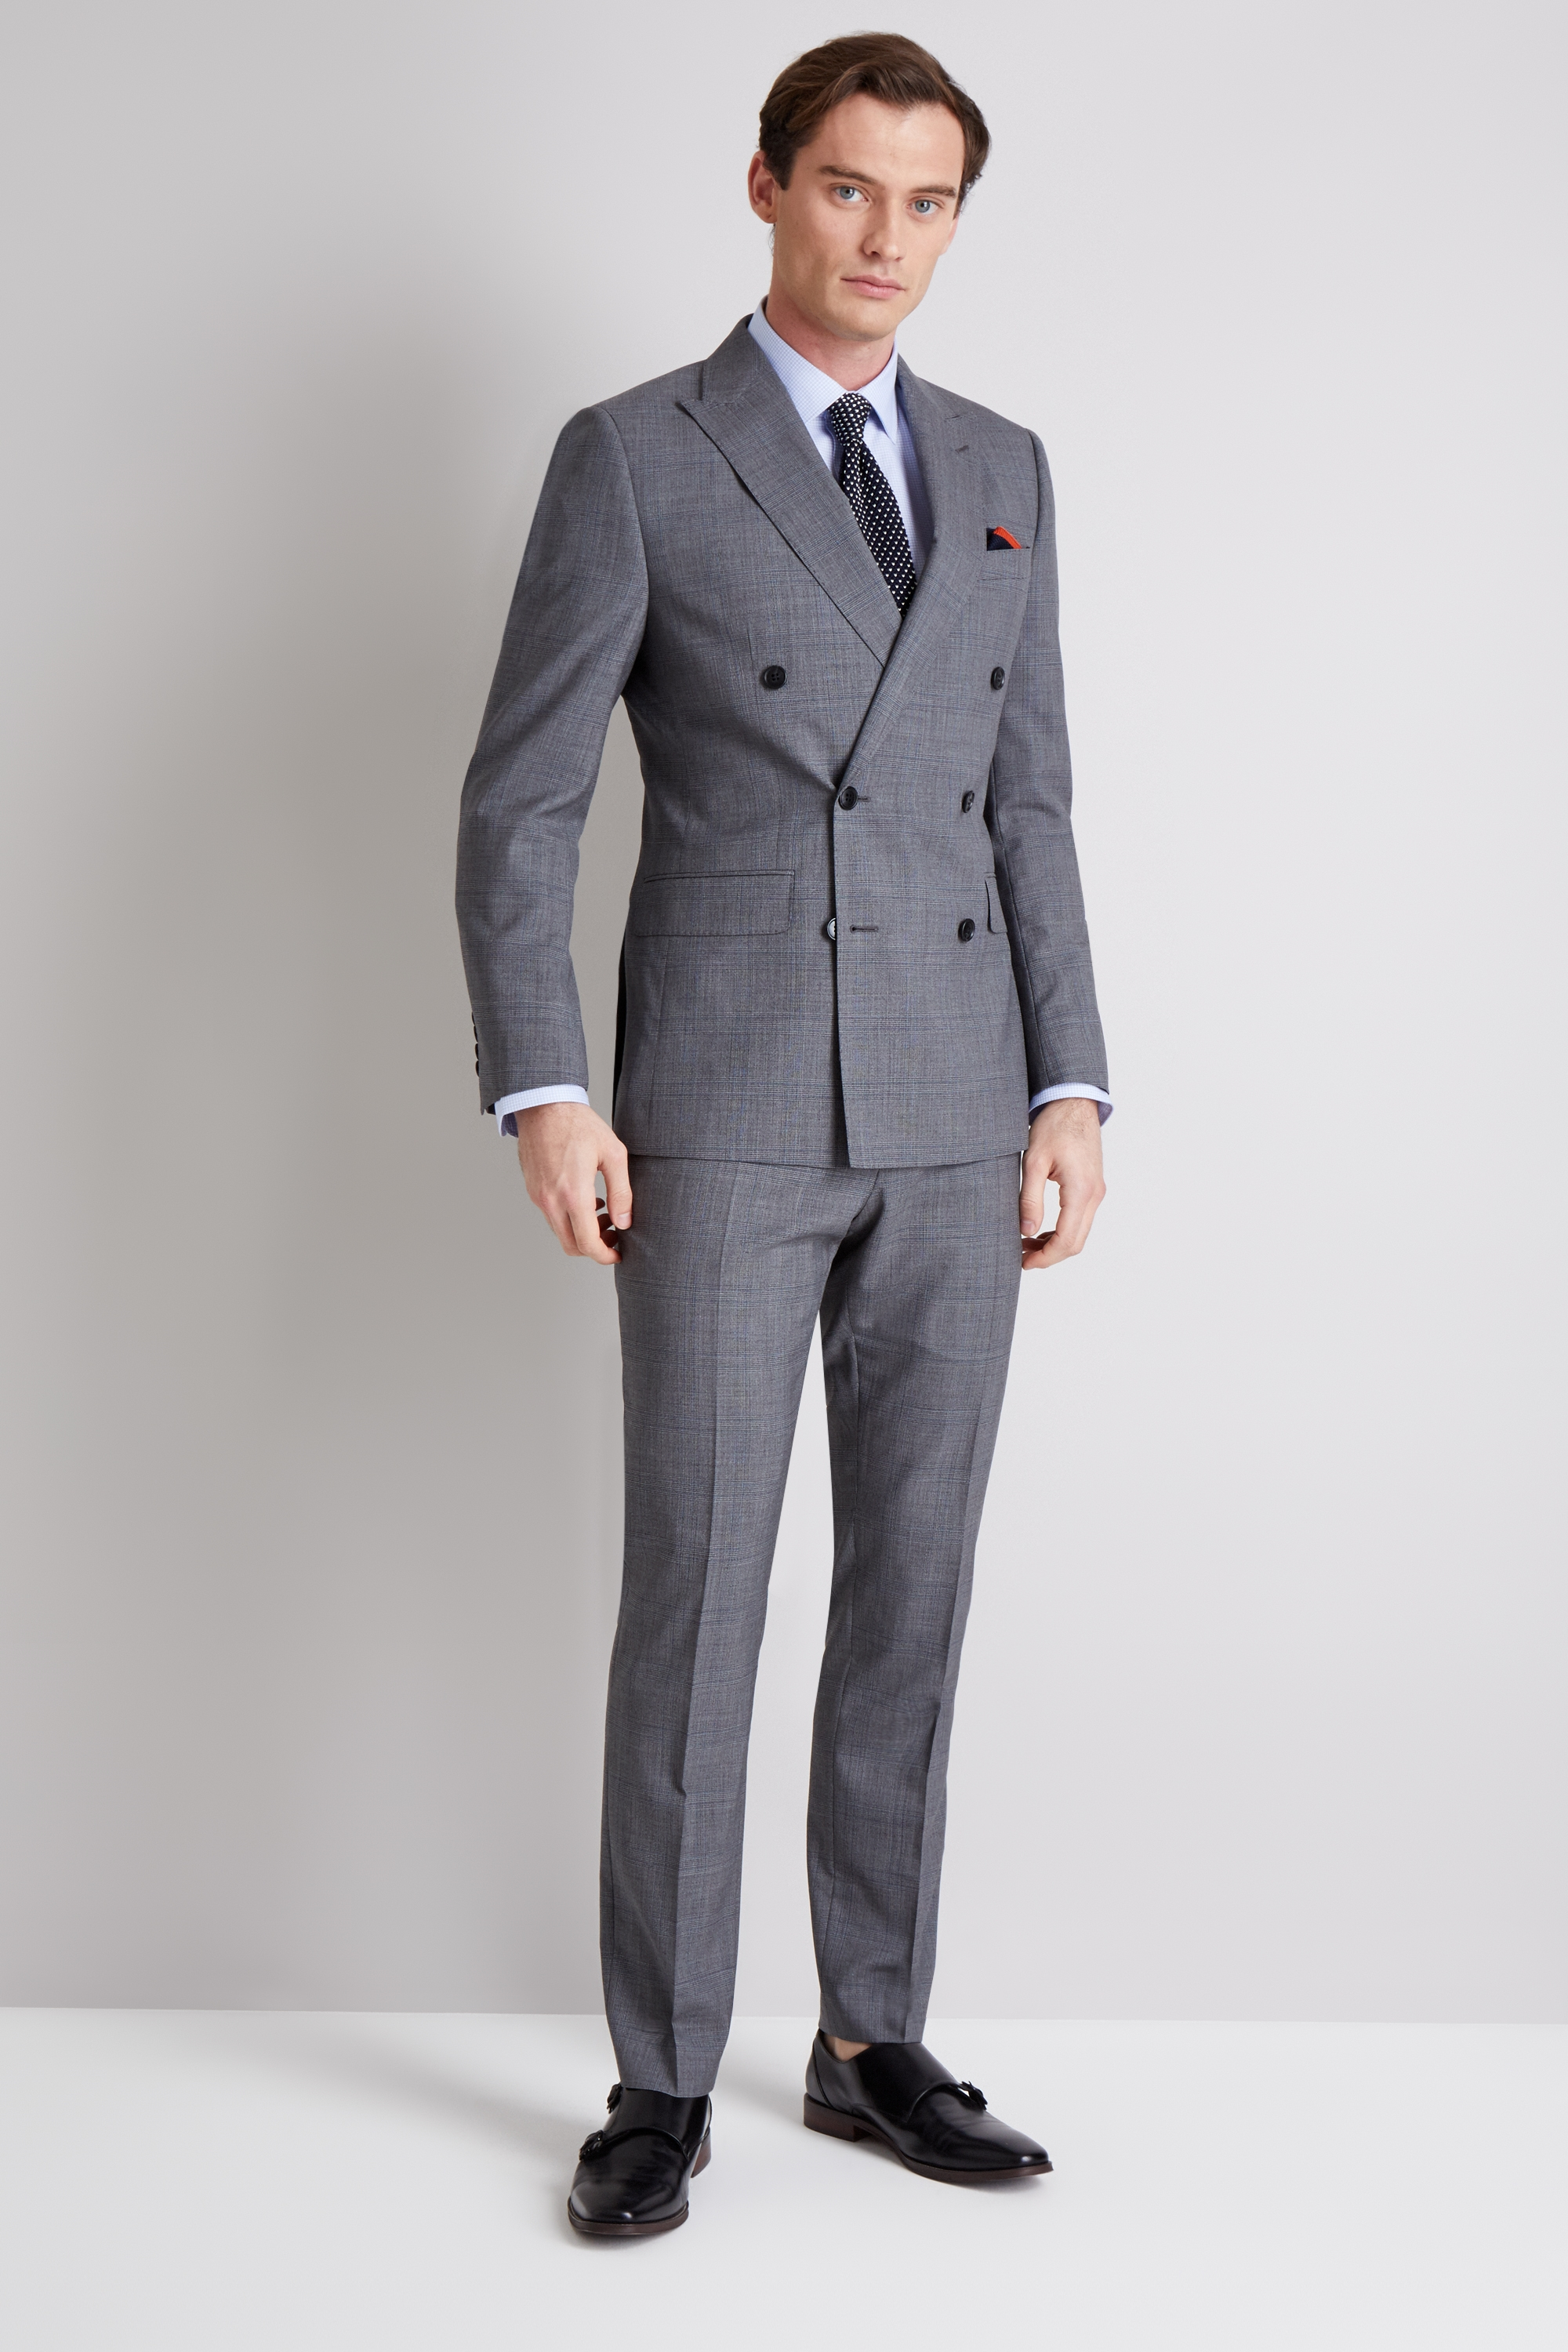 cecb1b82b Moss 1851 Tailored Fit Grey with Blue Check Double Breasted Jacket